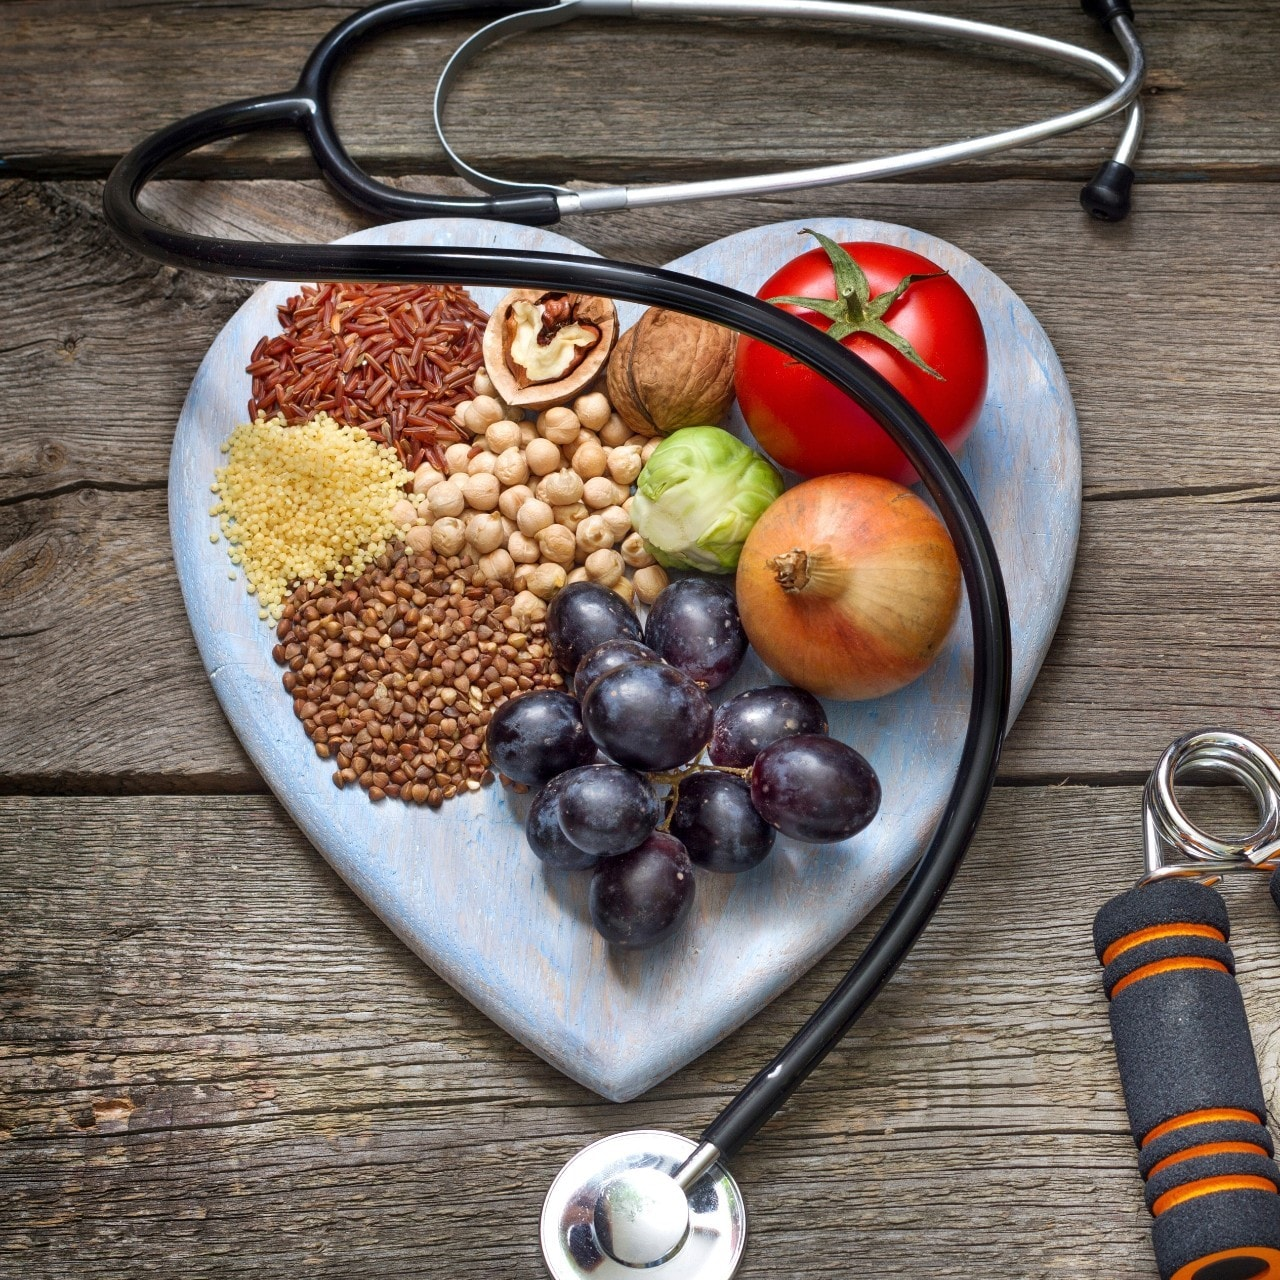 Heathly food arranged on a heart-shaped plate surrounded by a stethoscope and gym gear